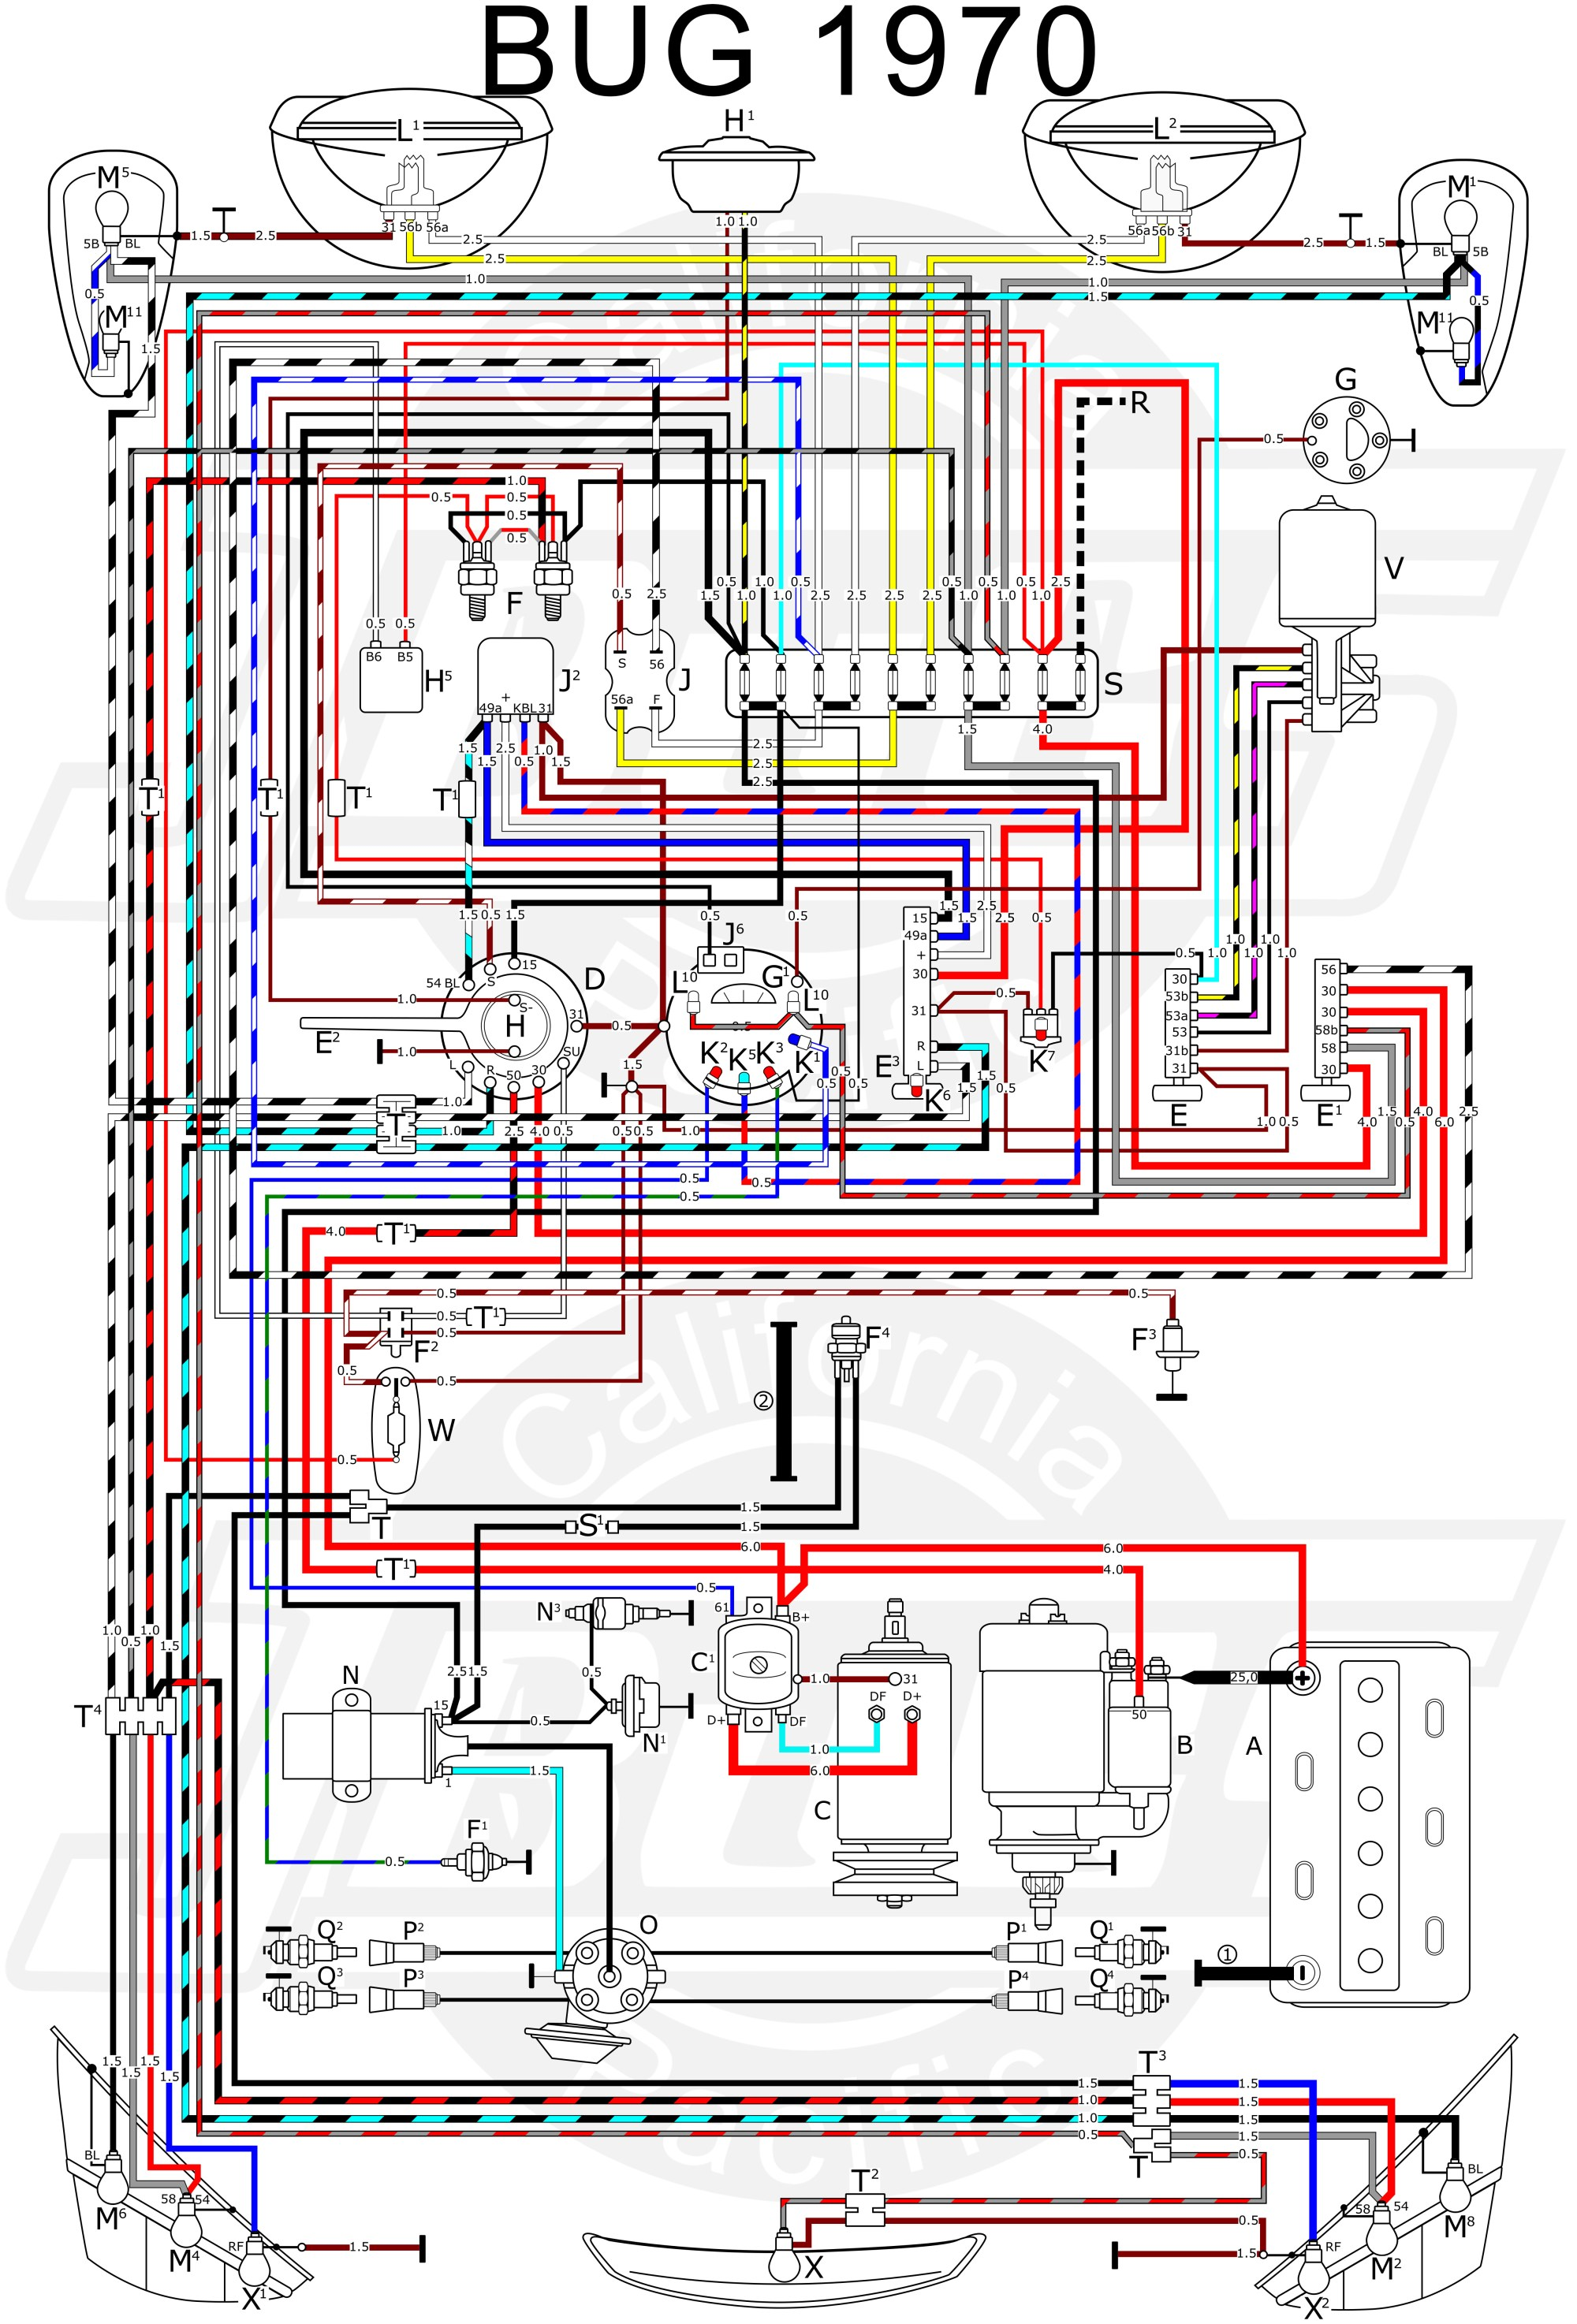 hight resolution of vw bug fuse diagram wiring diagrams 1974 super beetle fuse box diagram wiring diagram centre 2000